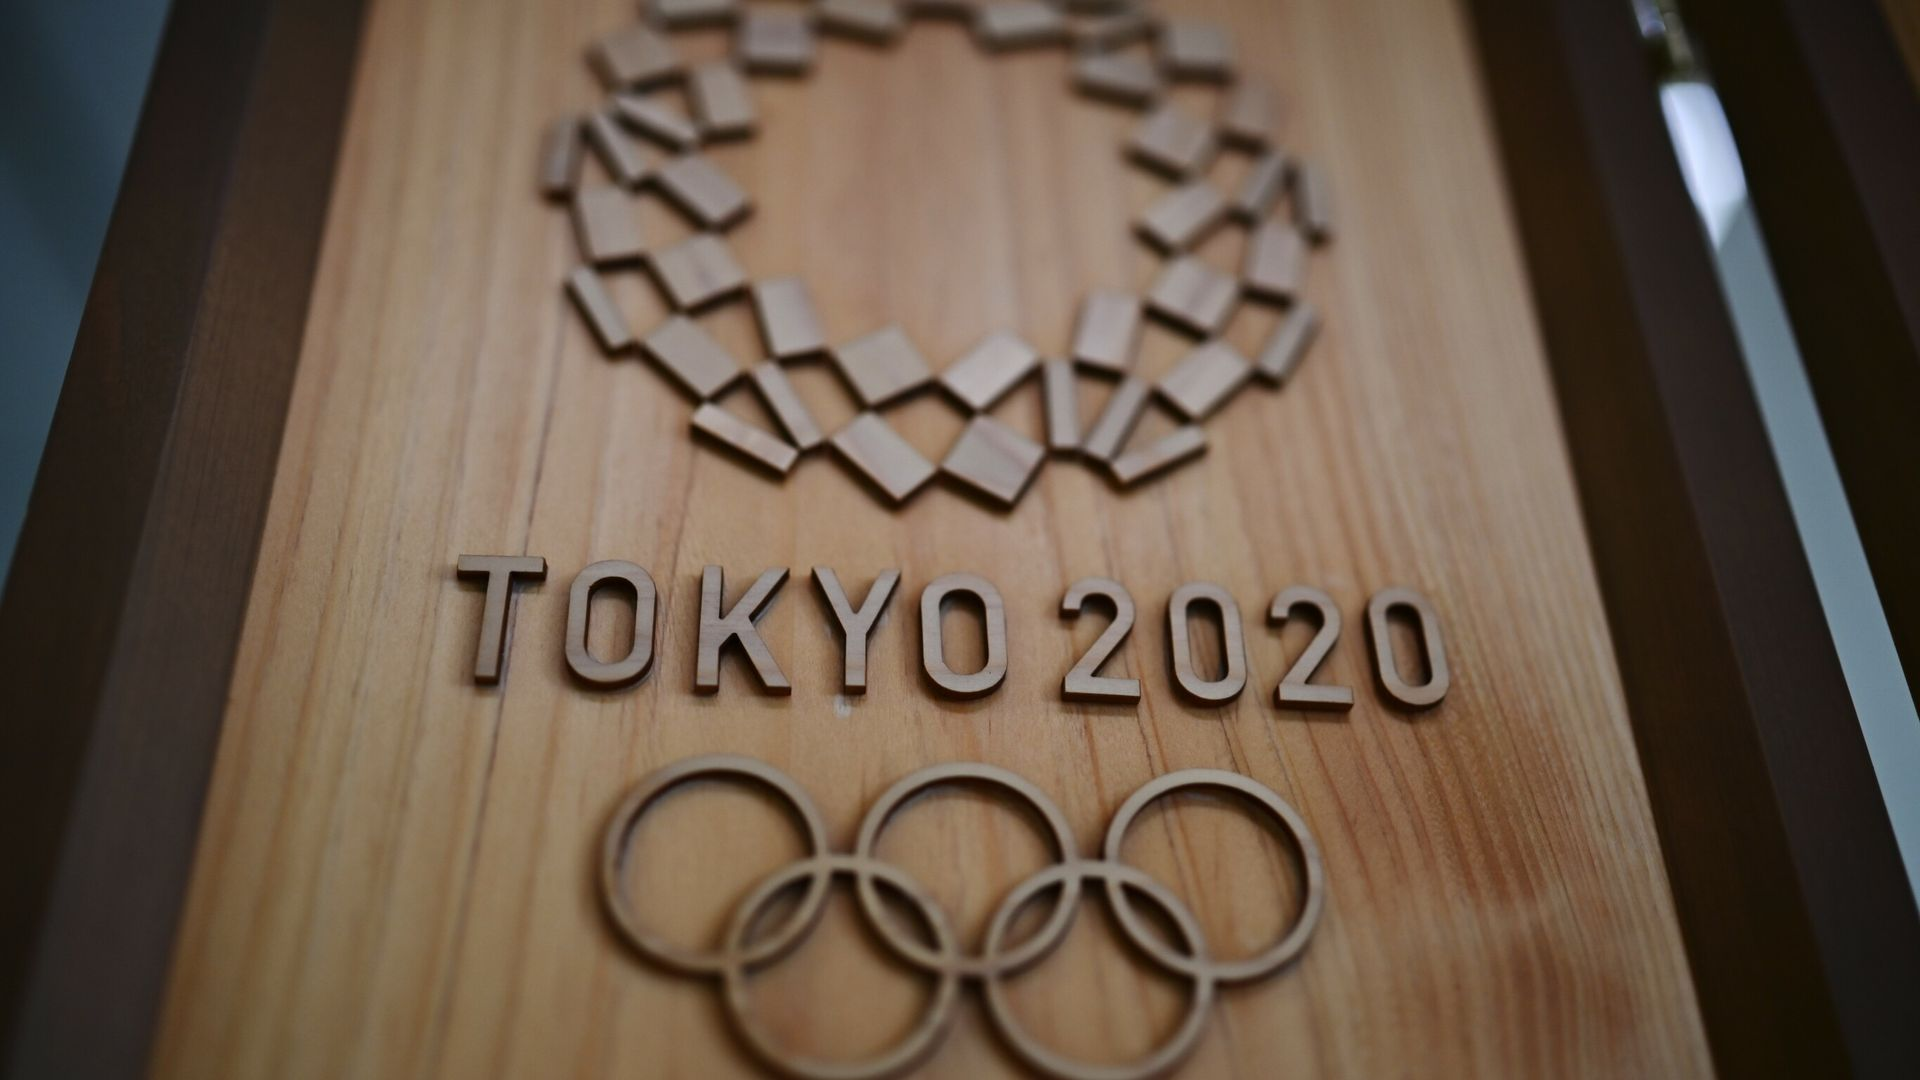 Tokyo Games to use cyber countermeasures